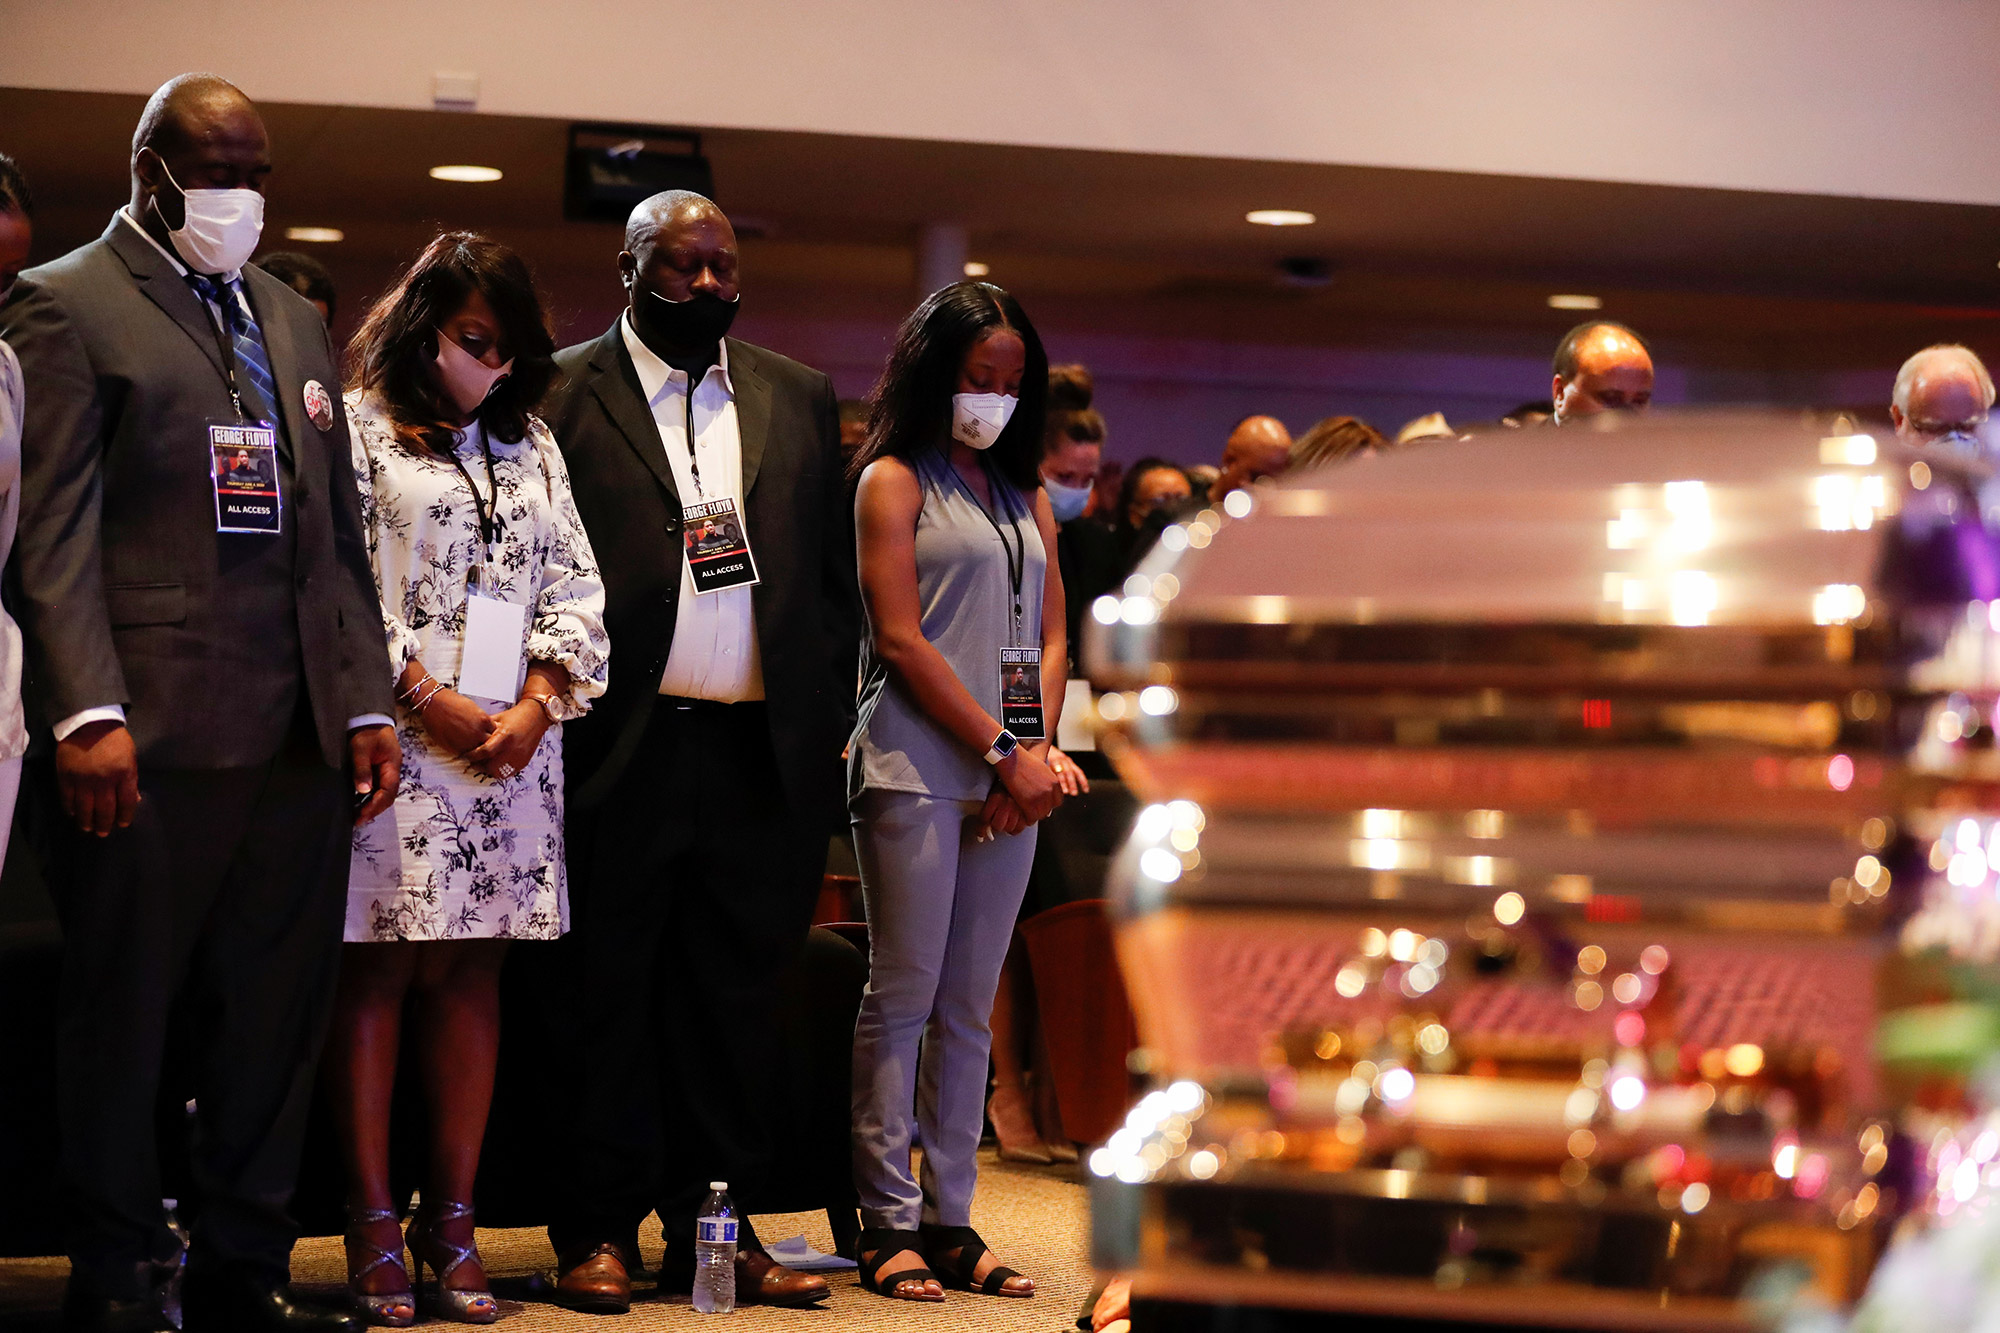 Family members of George Floyd attend a memorial service for George Floyd following his death in Minneapolis police custody, in Minneapolis, Minnesota. (Lucas Jackson/Reuters via CNN Wire)